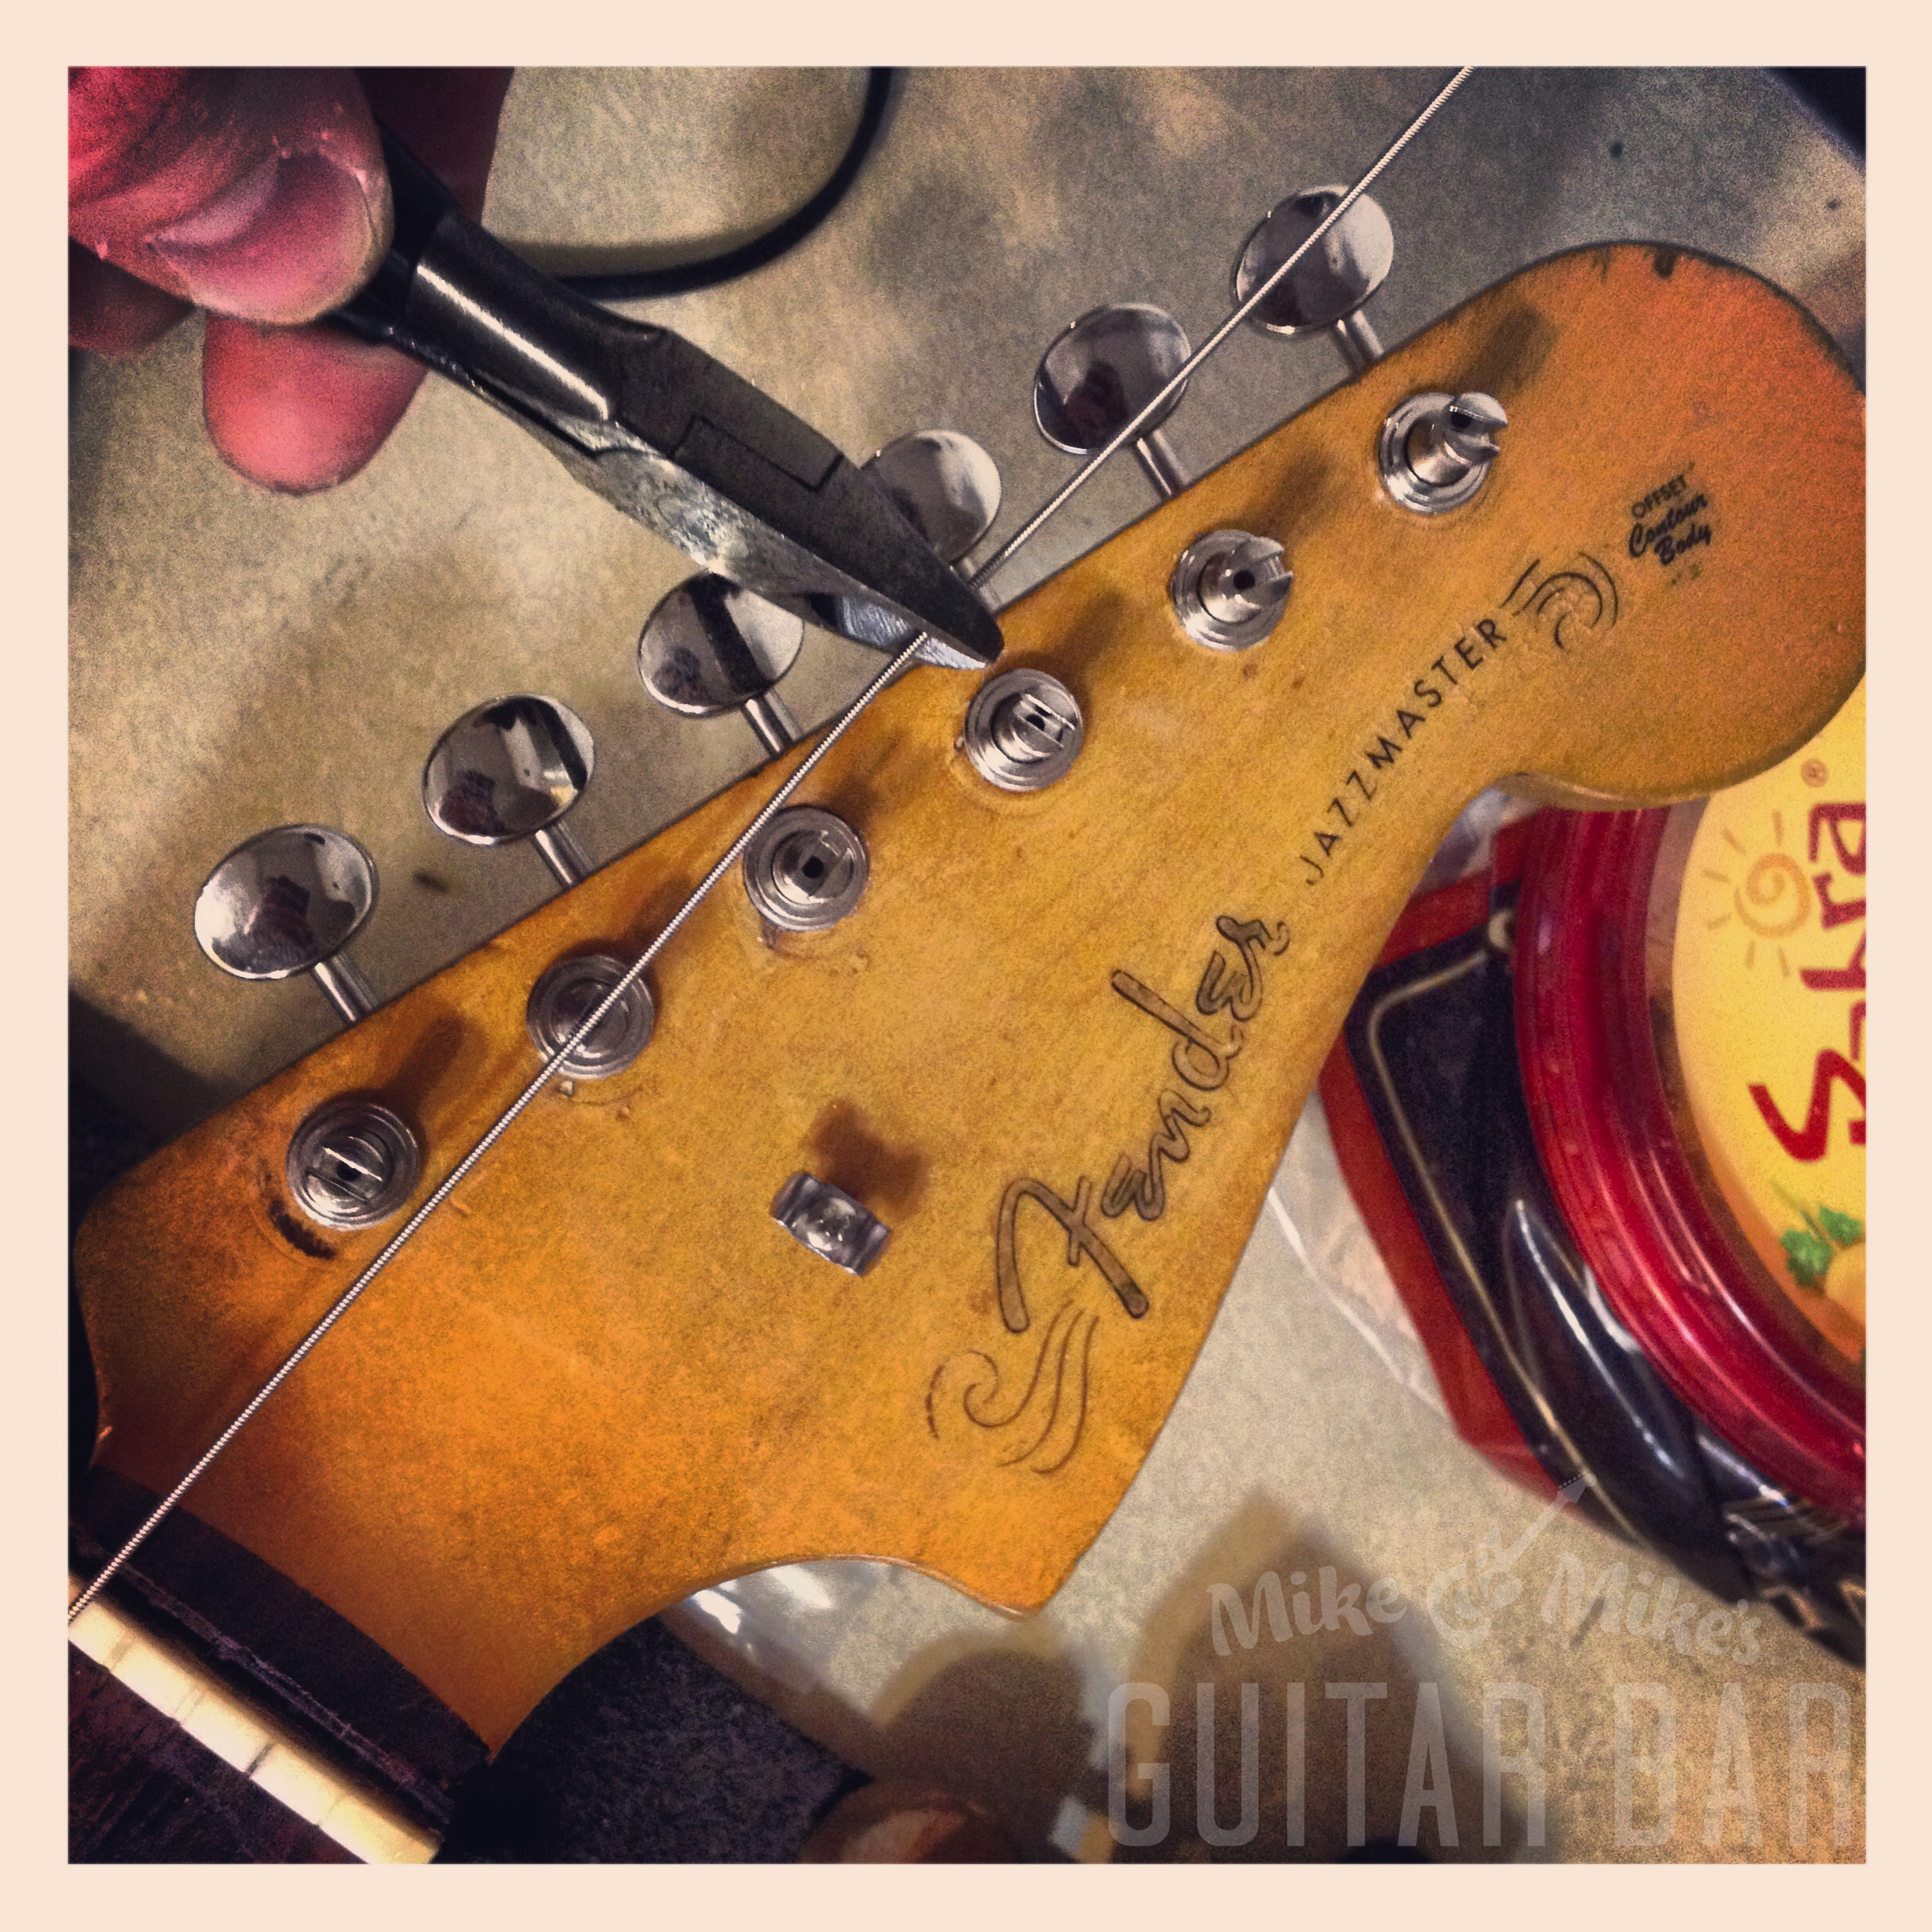 tone tips and tricks mike \u0026 mike\u0027s guitar baron fender guitars, i\u0027ll pull the string so that it\u0027s semi taut, then measure three tuners farther than the one i\u0027m stringing